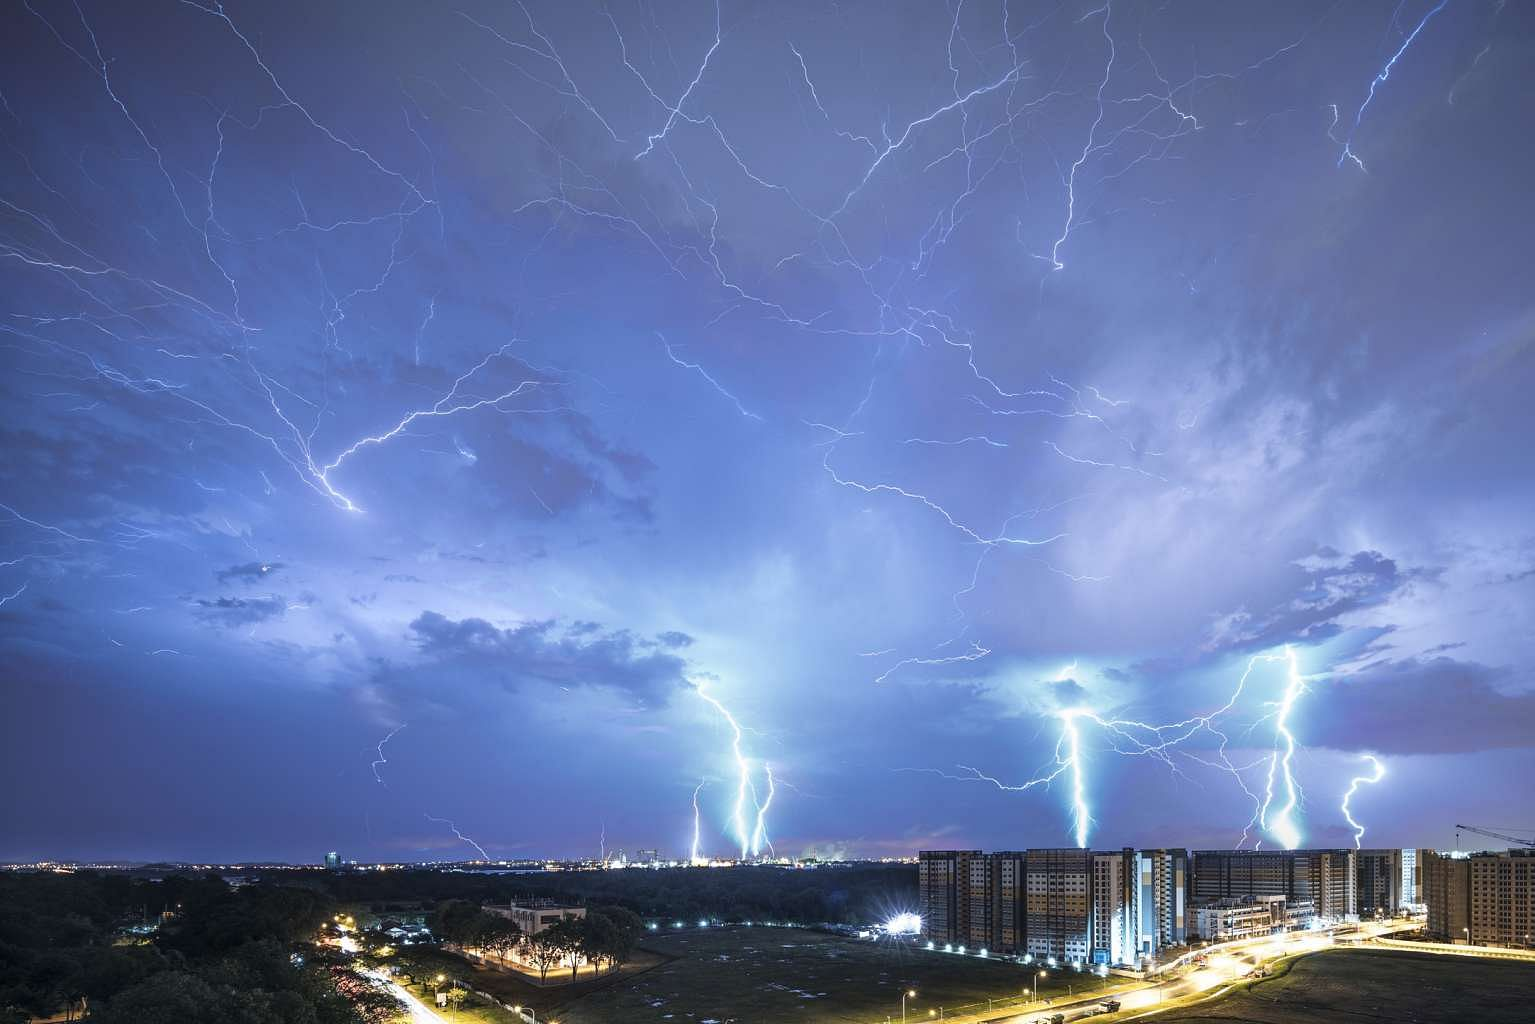 cord lighting. Singapore Photographer\u0027s Lightning Images Earn International Recognition, Praise From PM Lee, News \u0026 Top Stories - The Straits Times Cord Lighting